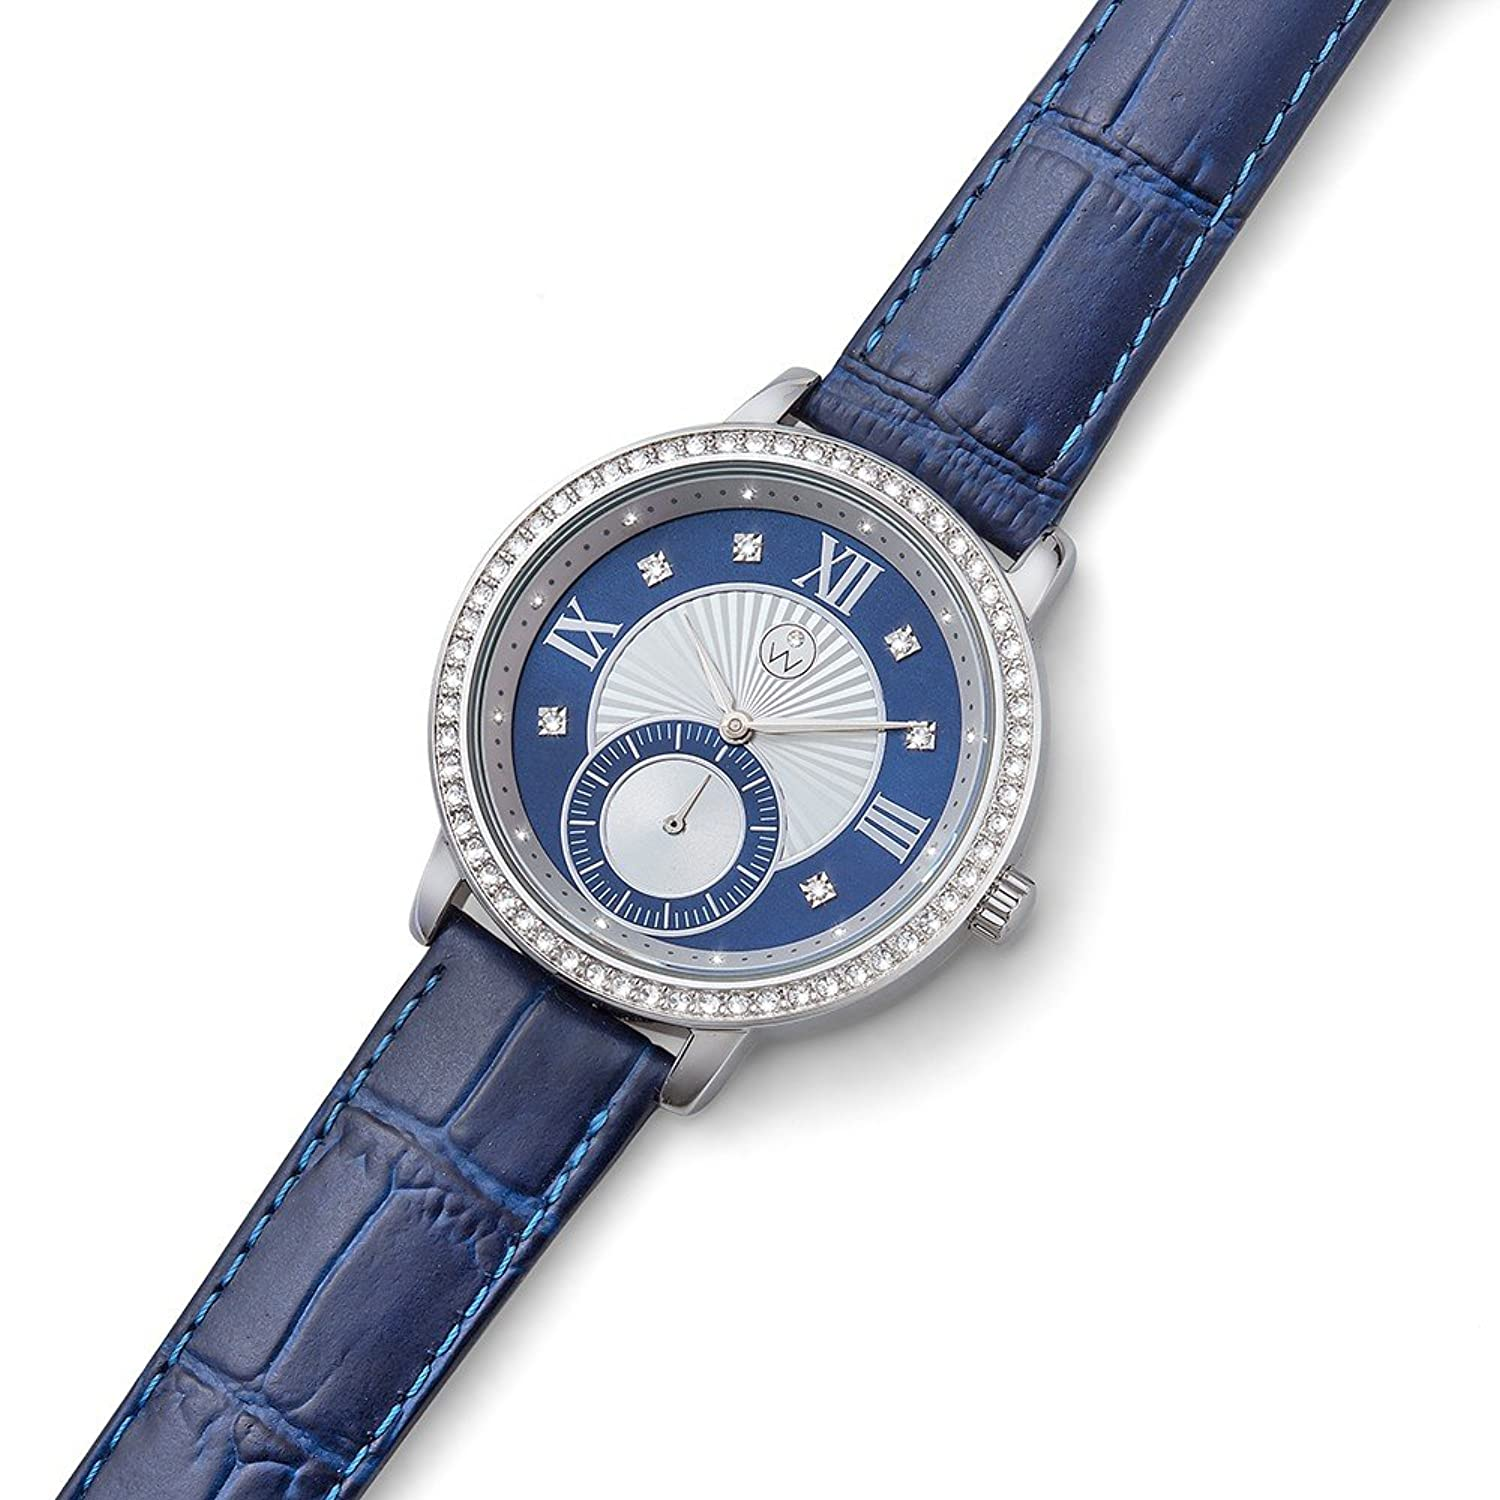 Oliver Weber Uhr Istanbul blue with Crystals from Swarovski Damen